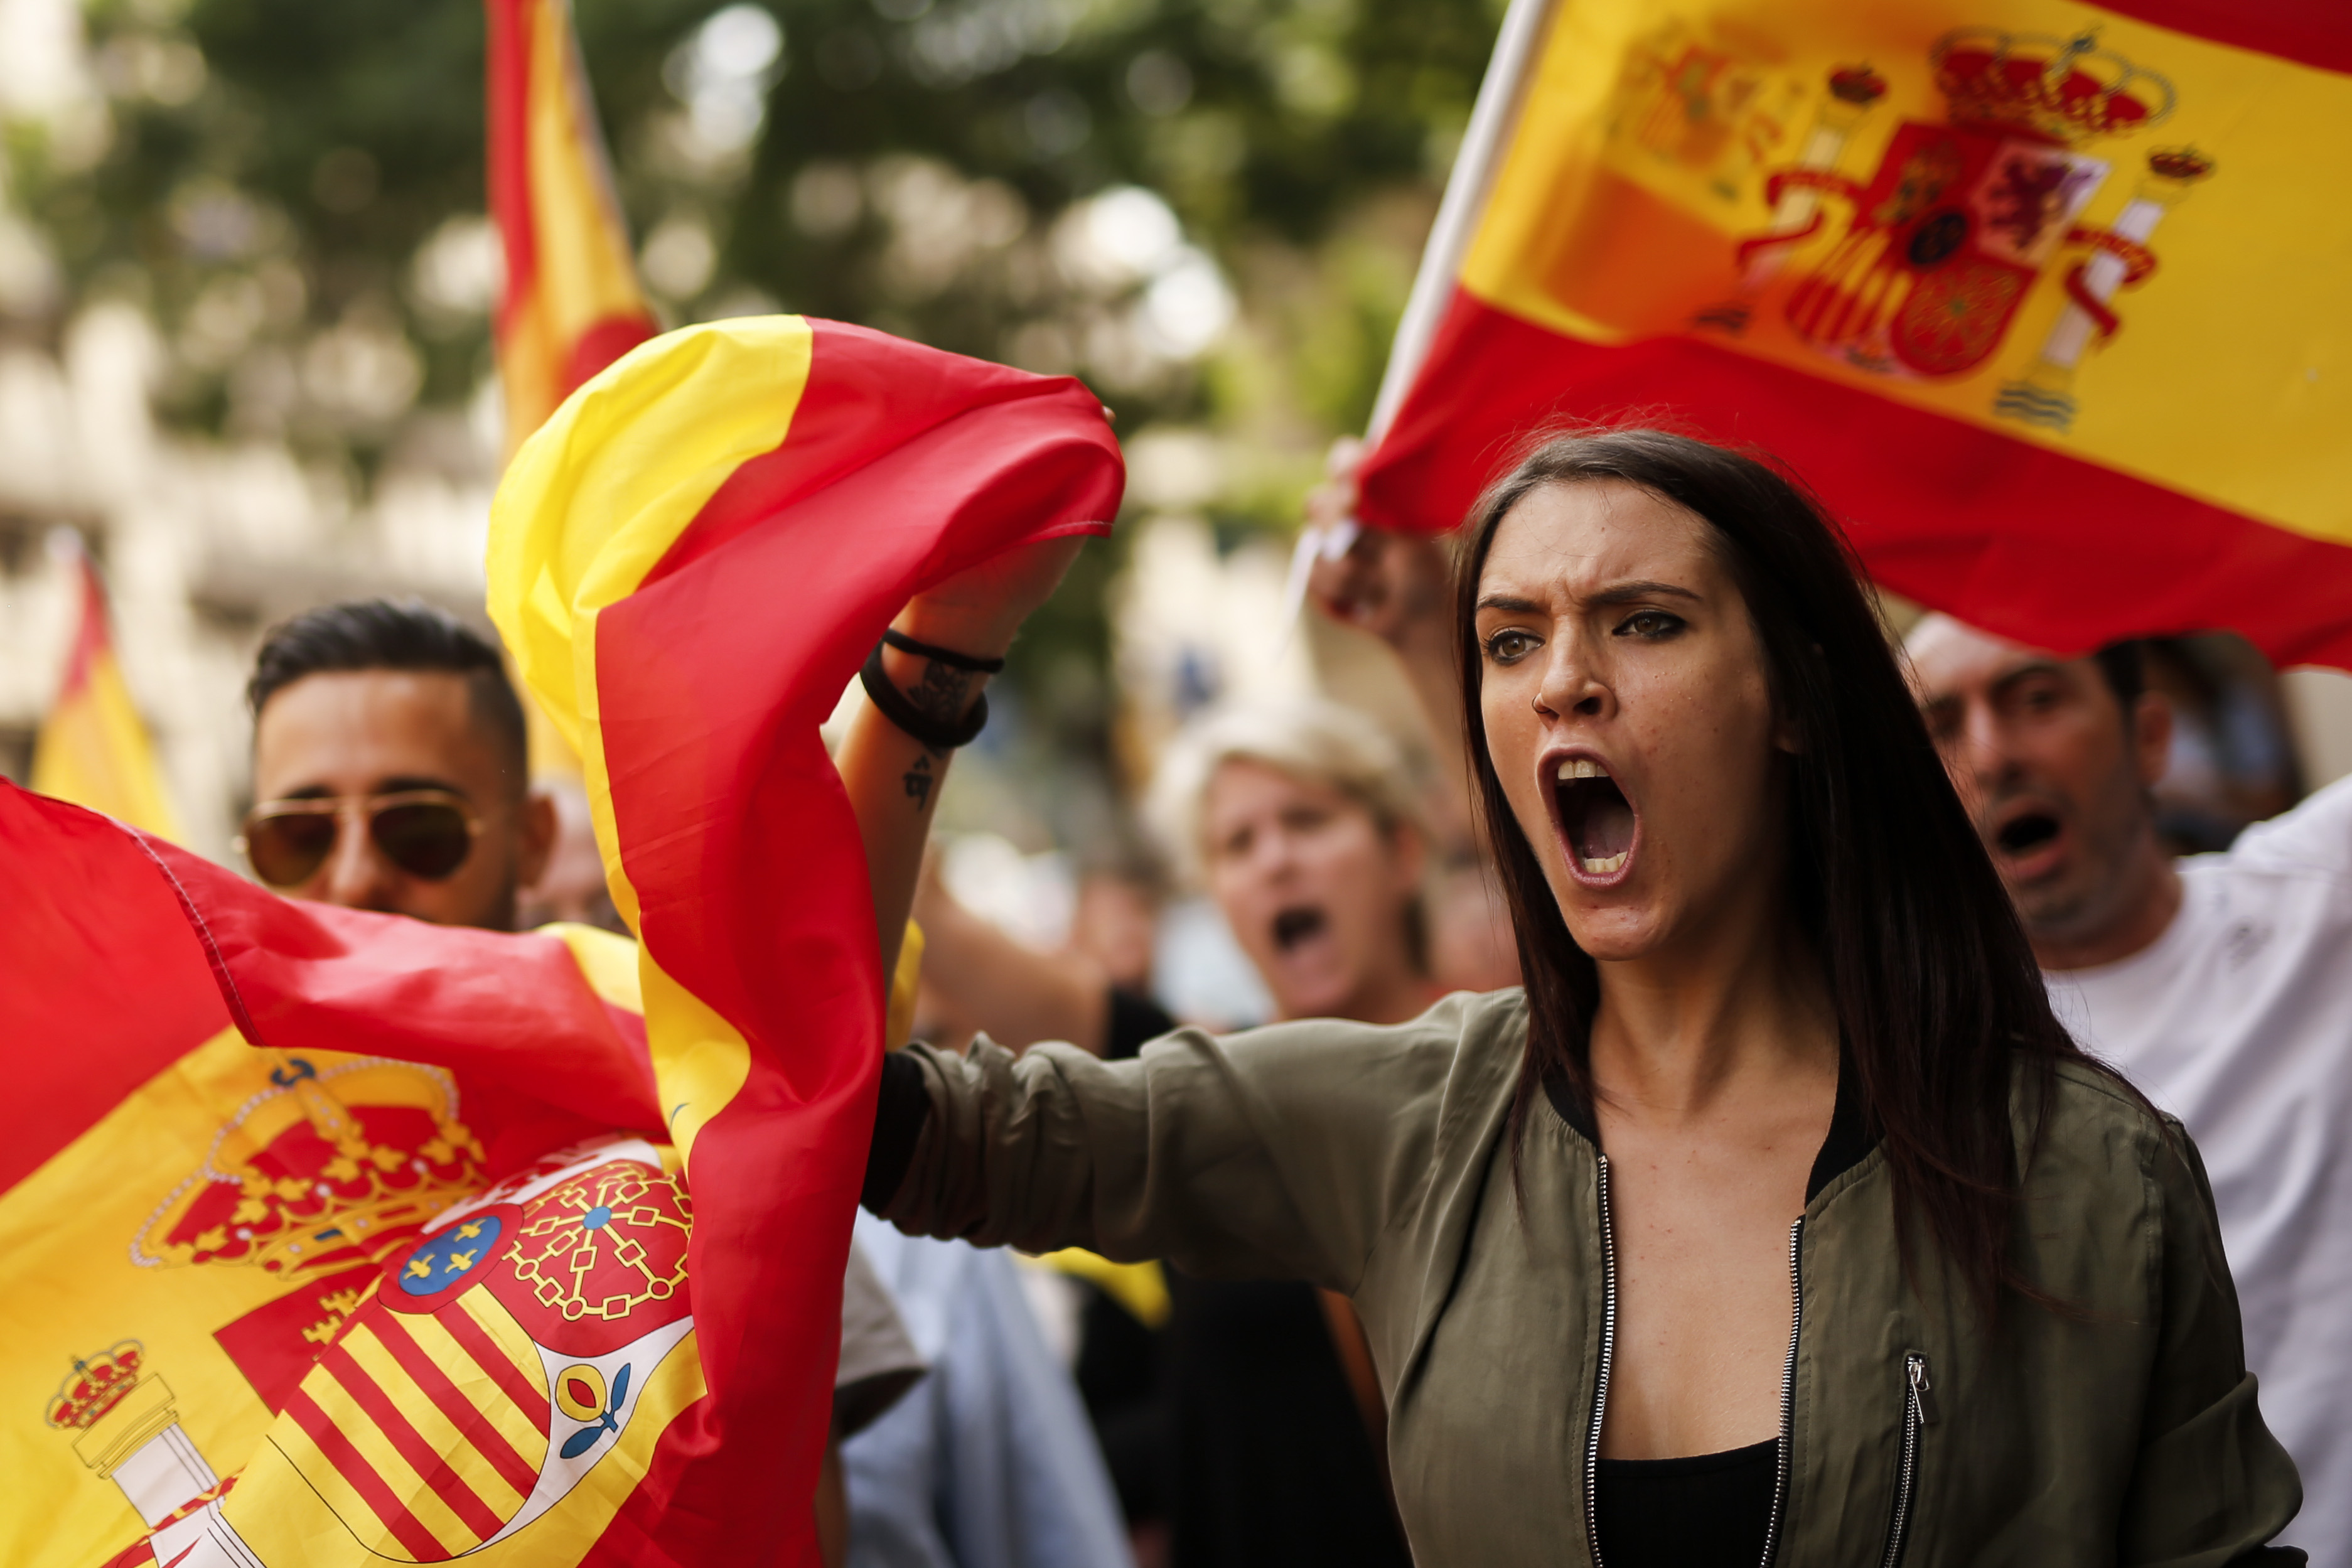 Protestors hold Spanish flags during a demonstration against independence in Catalonia called by the xenophobic far-right party 'Platform for Catalonia' (PXC) in front of the Spanish National Police headquarters in Barcelona, on September 30, 2017. Hundreds of people, many waving red and yellow Spanish flags, rallied in Barcelona in favour of Spanish unity today, a day before a banned independence referendum in Catalonia. / AFP PHOTO / PAU BARRENA /